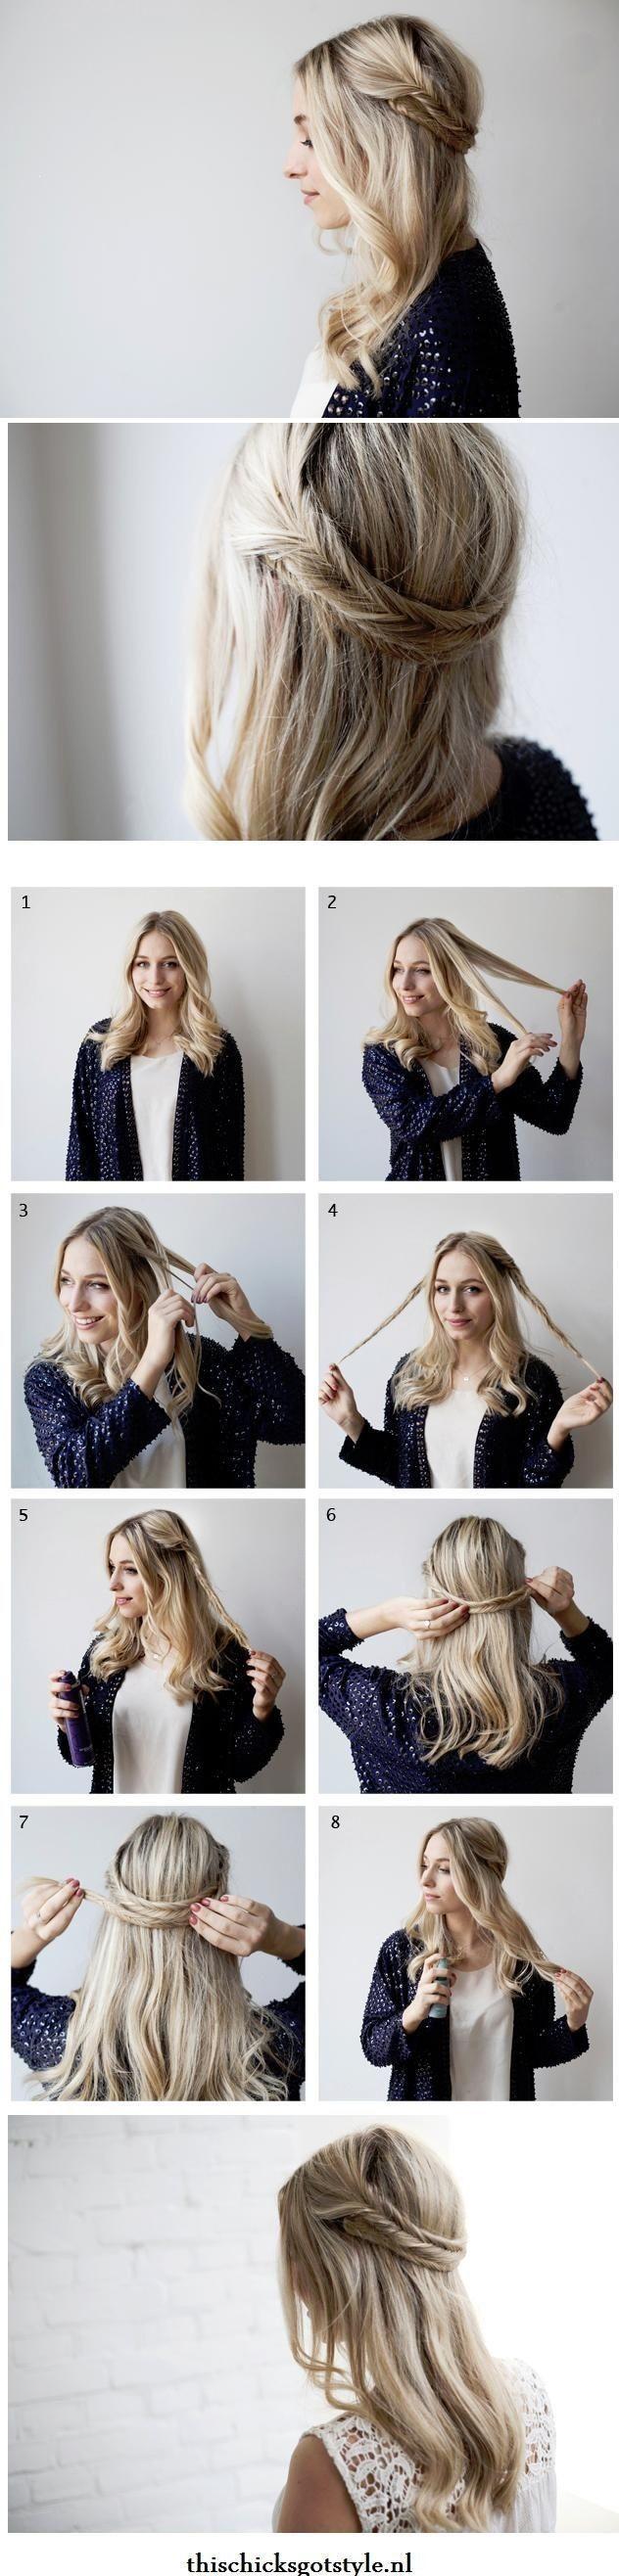 Magnificent 11 Simple Yet Stylish Hairstyle Tutorials For Work Pretty Designs Short Hairstyles Gunalazisus